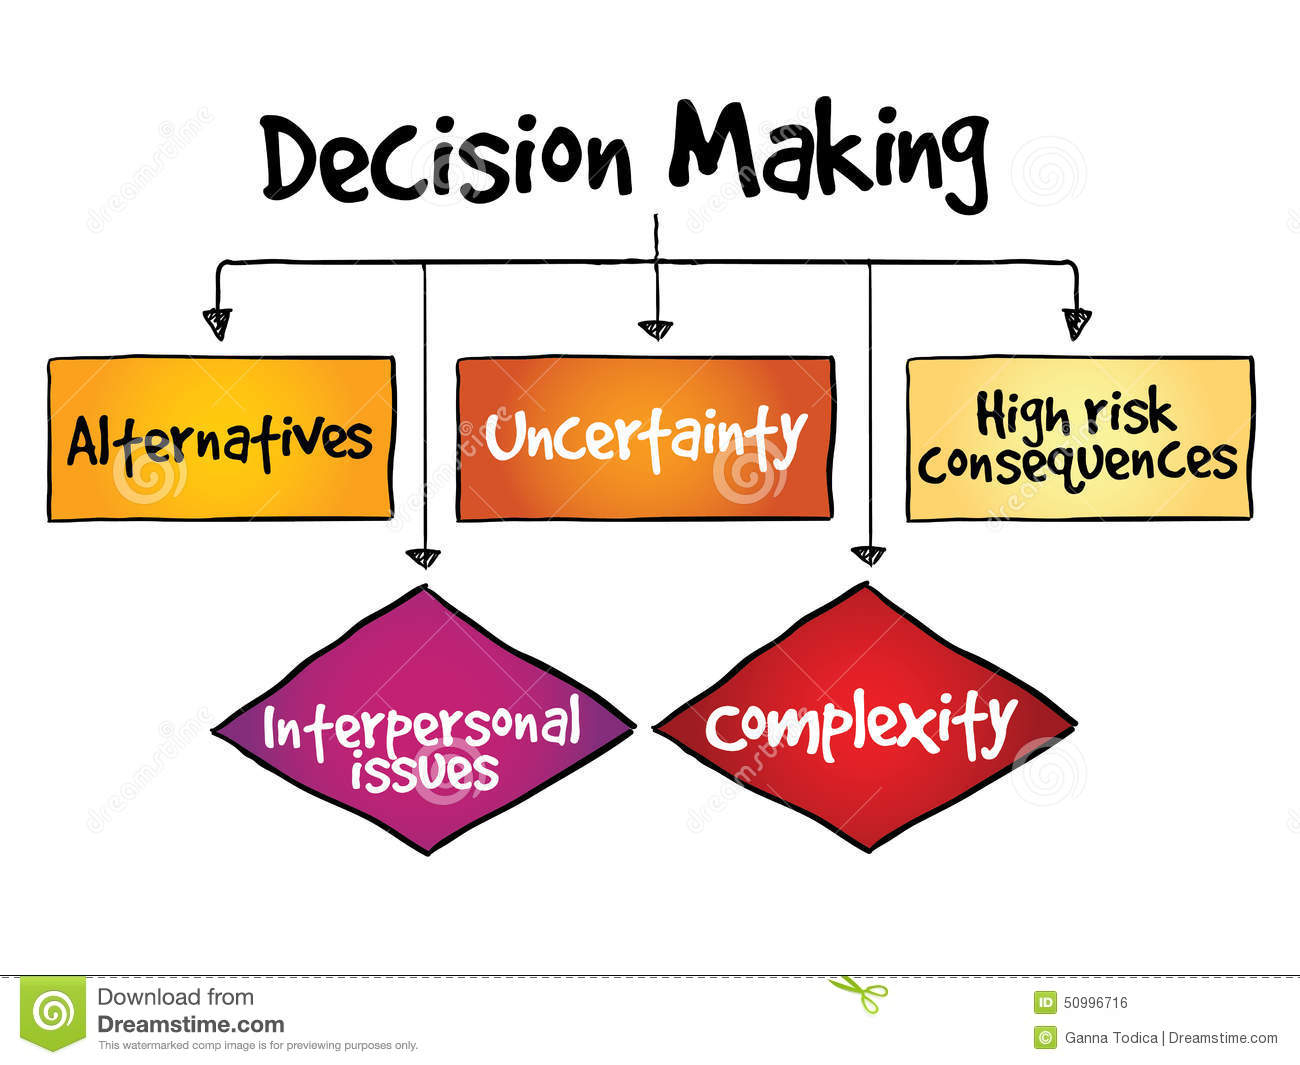 Decision Making Process Evaluation and Infographic.